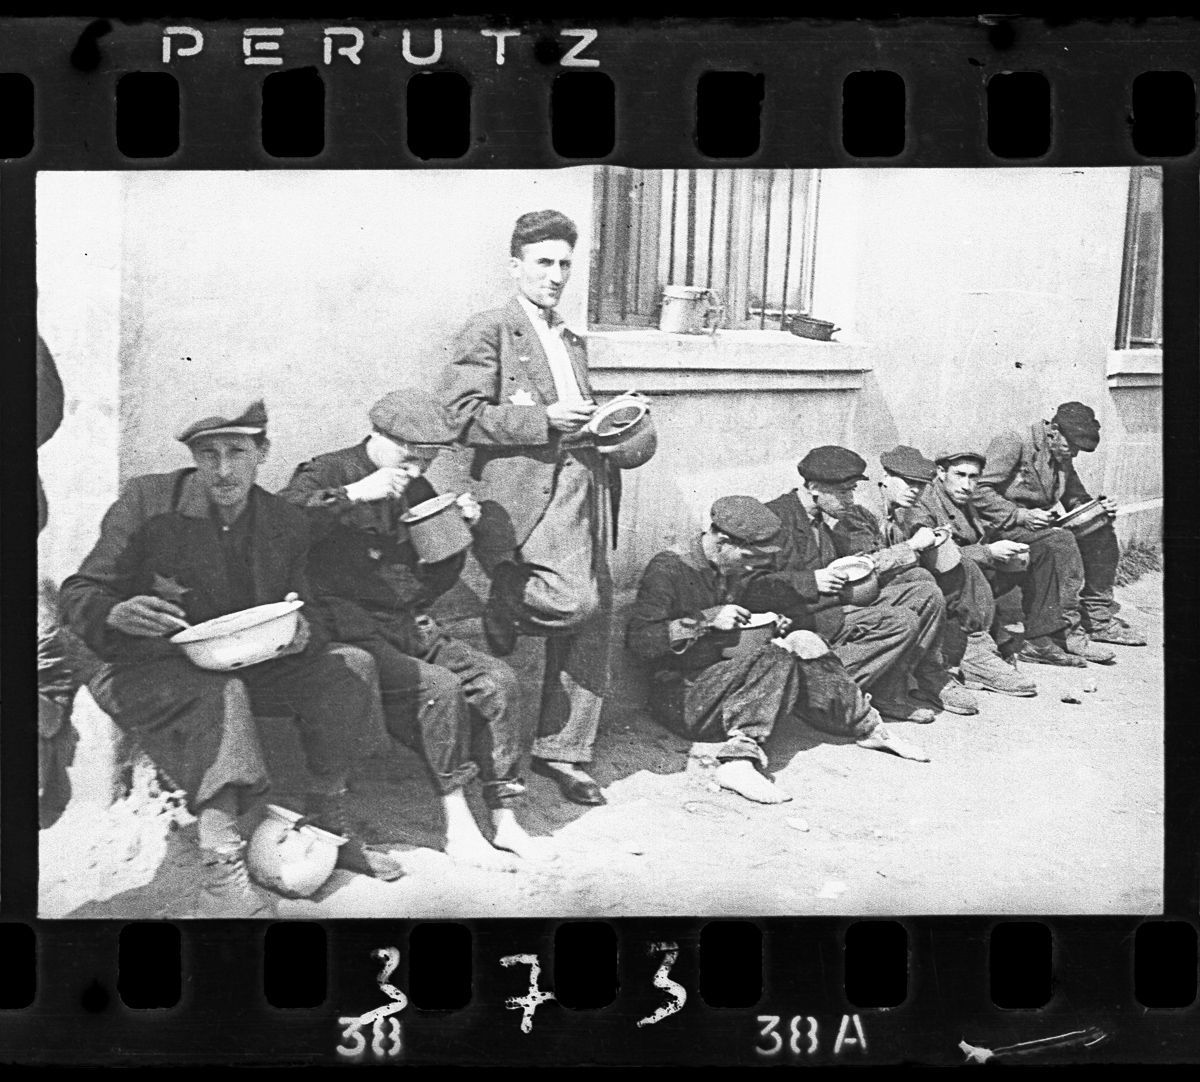 """c. 1940-1944 """"Soup for lunch"""" (Group of men alongside building eating from pails)."""